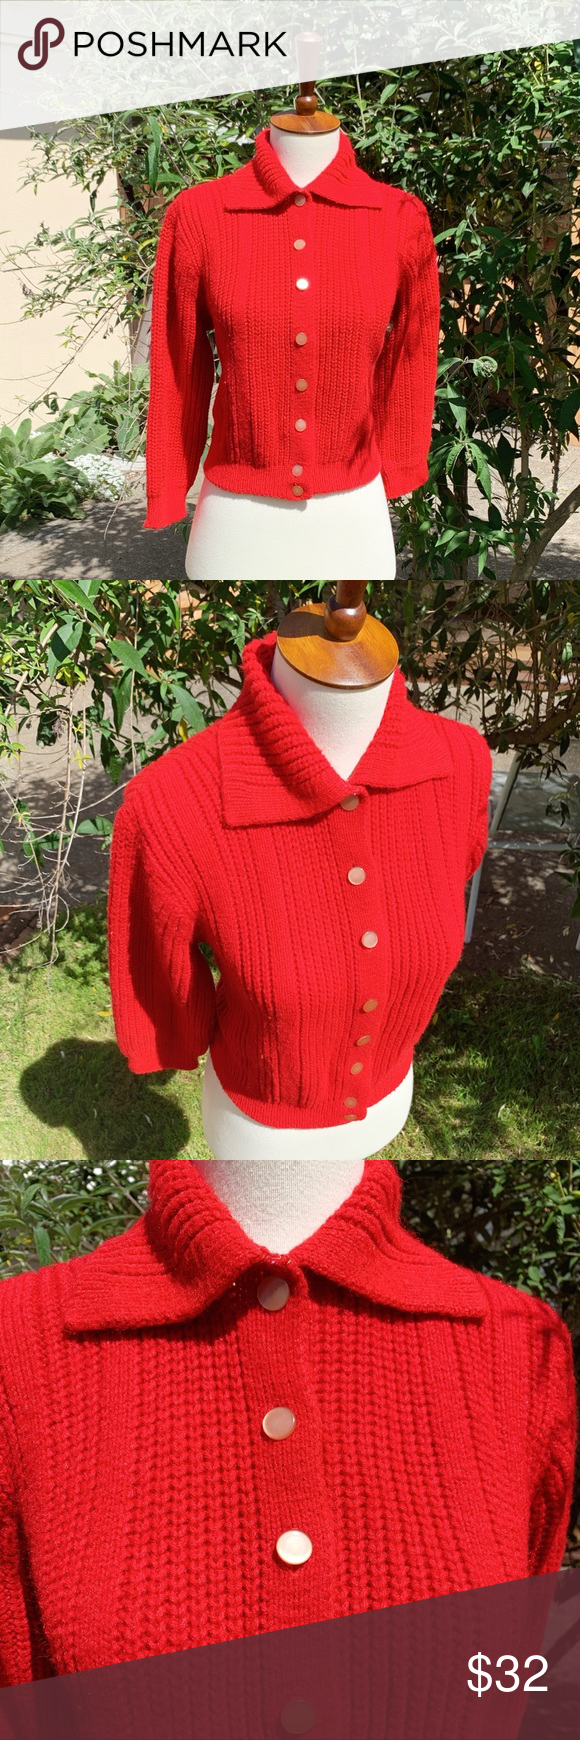 Vintage 50s Red Knit Cropped Cardigan Sweater | Cropped